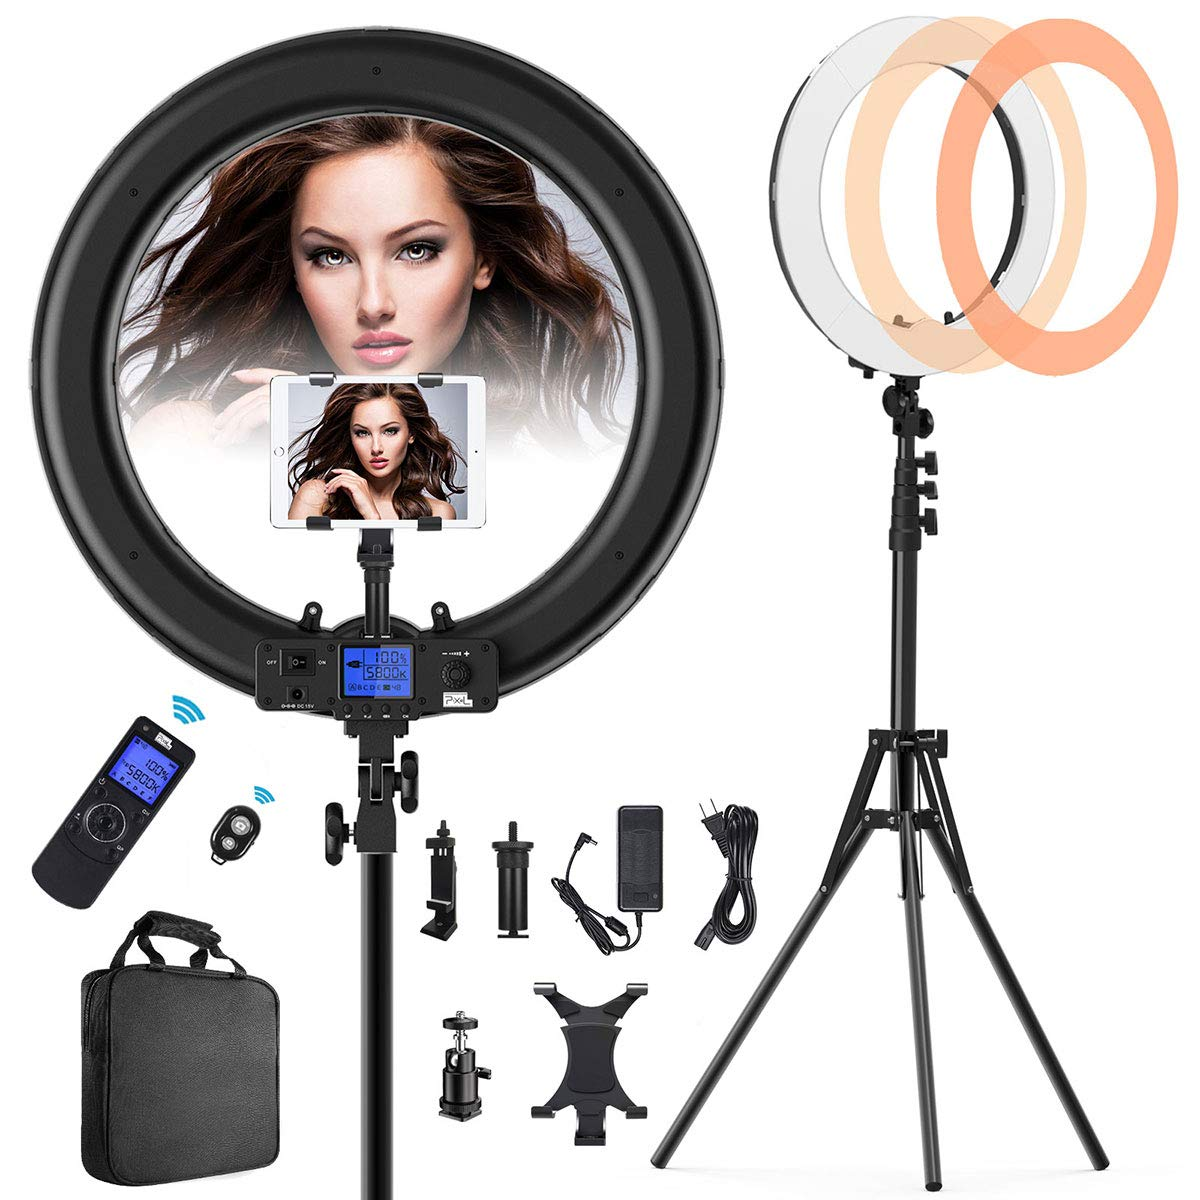 Ring Light with Wireless Remote and iPad Holder, Pixel 19'' Bi-Color LCD Display Ring Light with Stand and Selfie Remote, 55W 3000-5800K CRI≥97 Light Ring for Vlogging Portrait Makeup Video Shooting by PIXEL